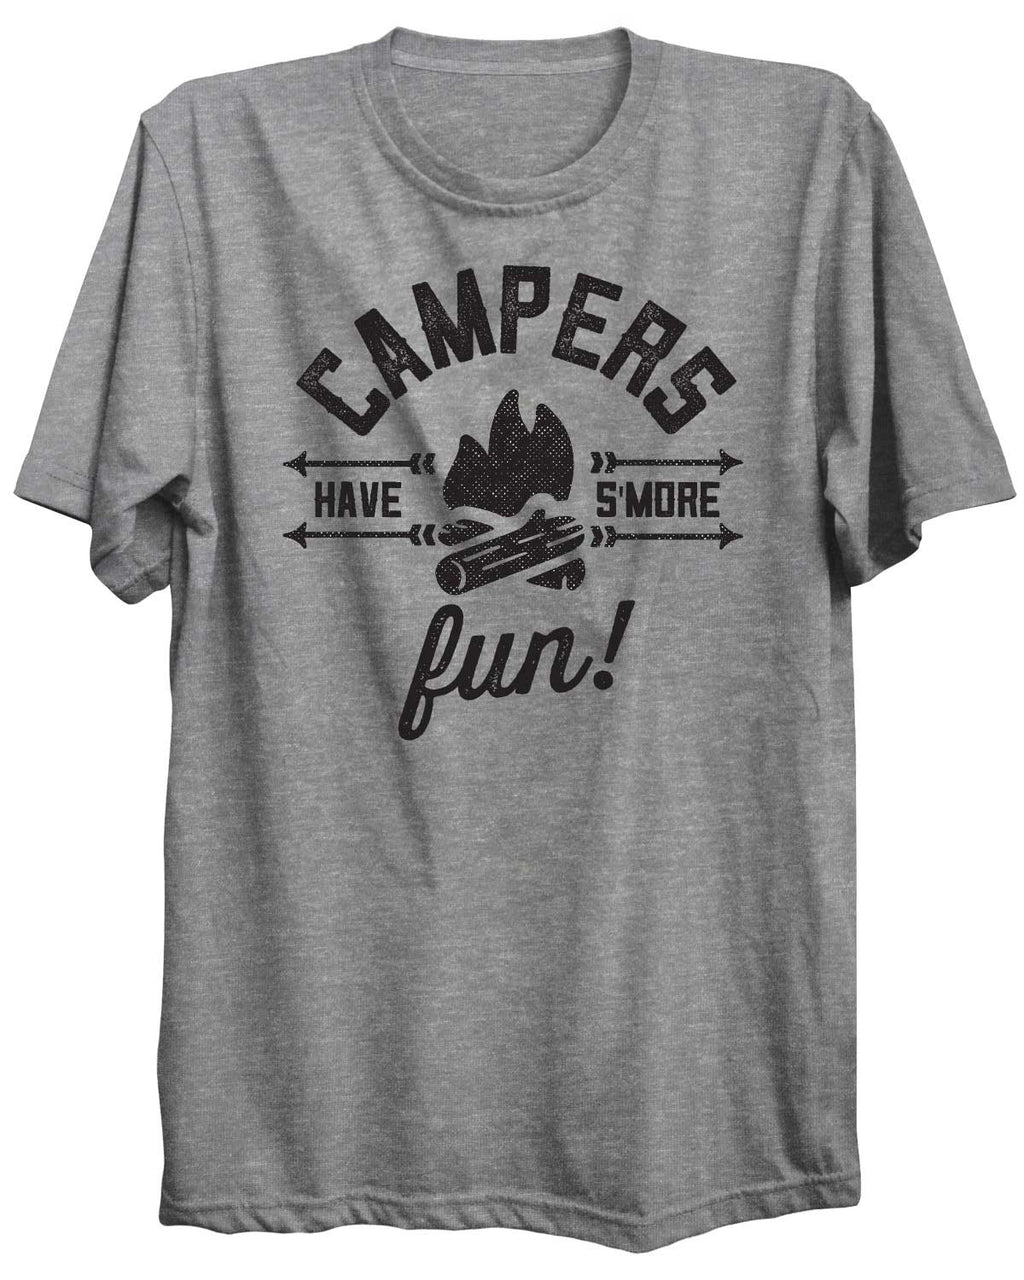 Campers Have S'more Fun! Camping Outdoors Unisex Tshirt